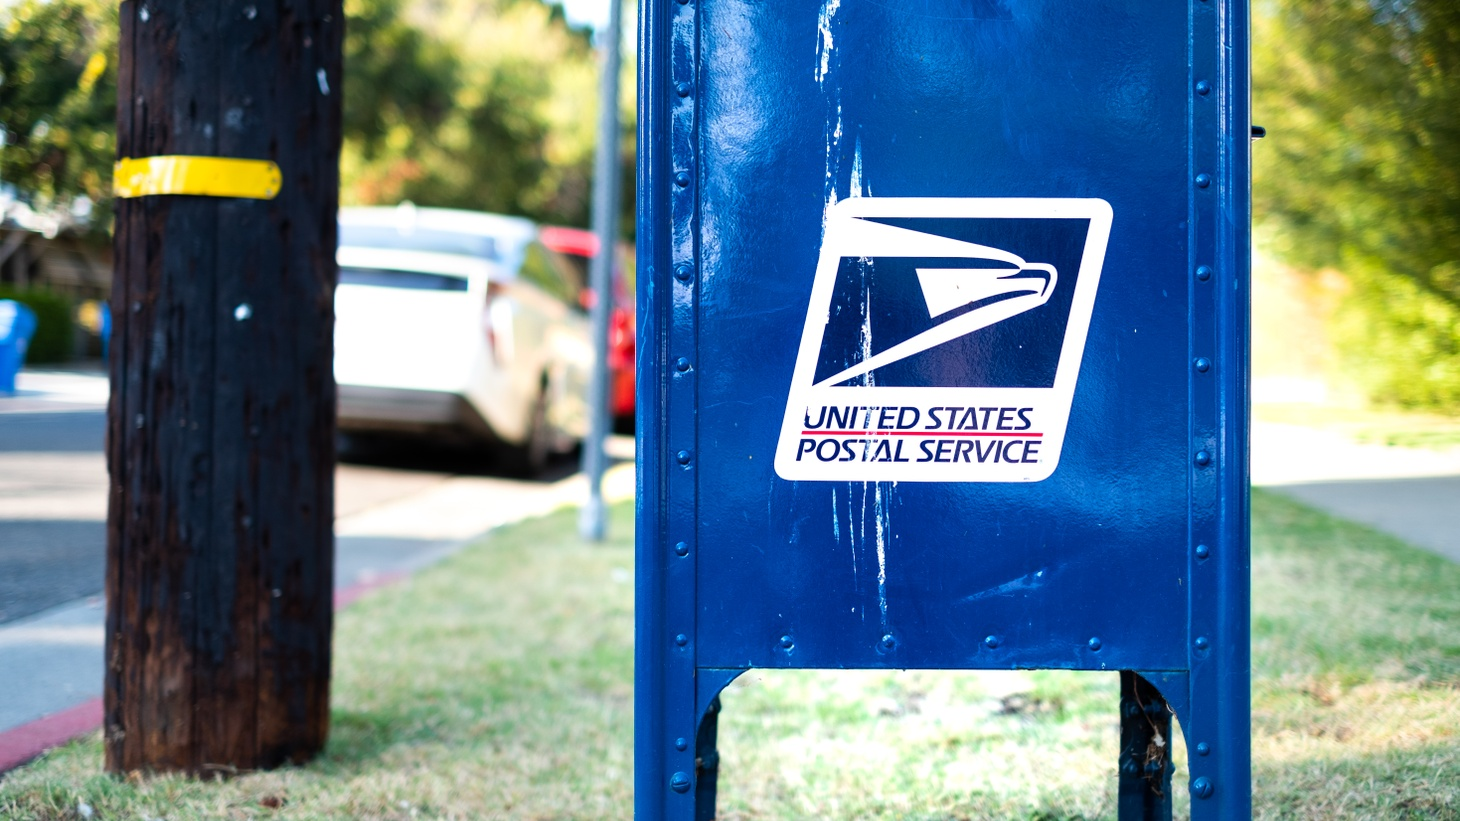 There's growing concern over whether the U.S. Postal Service will be able to handle the mass move toward voting by mail this November because of the pandemic.